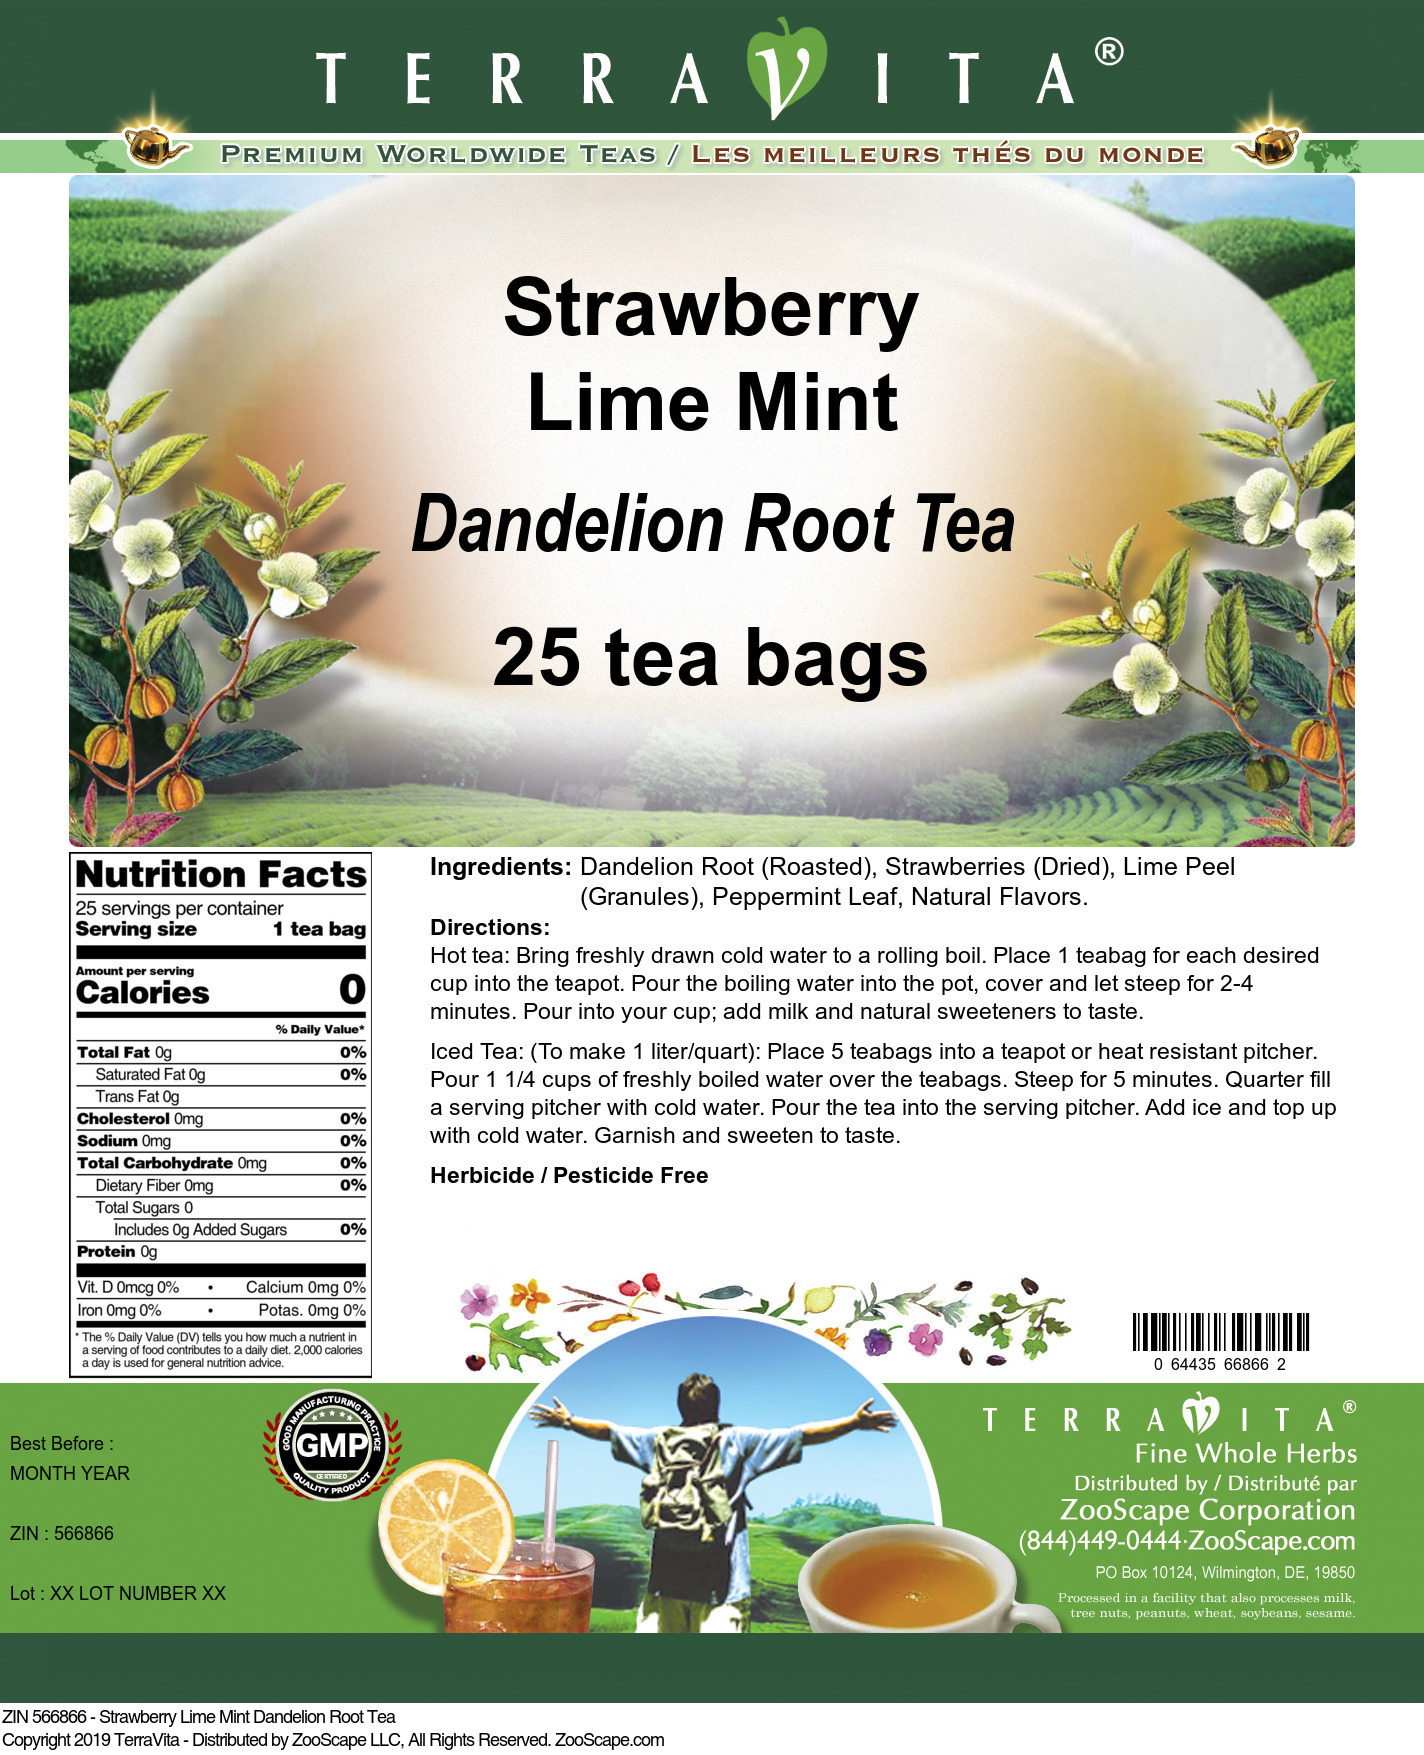 Strawberry Lime Mint Dandelion Root